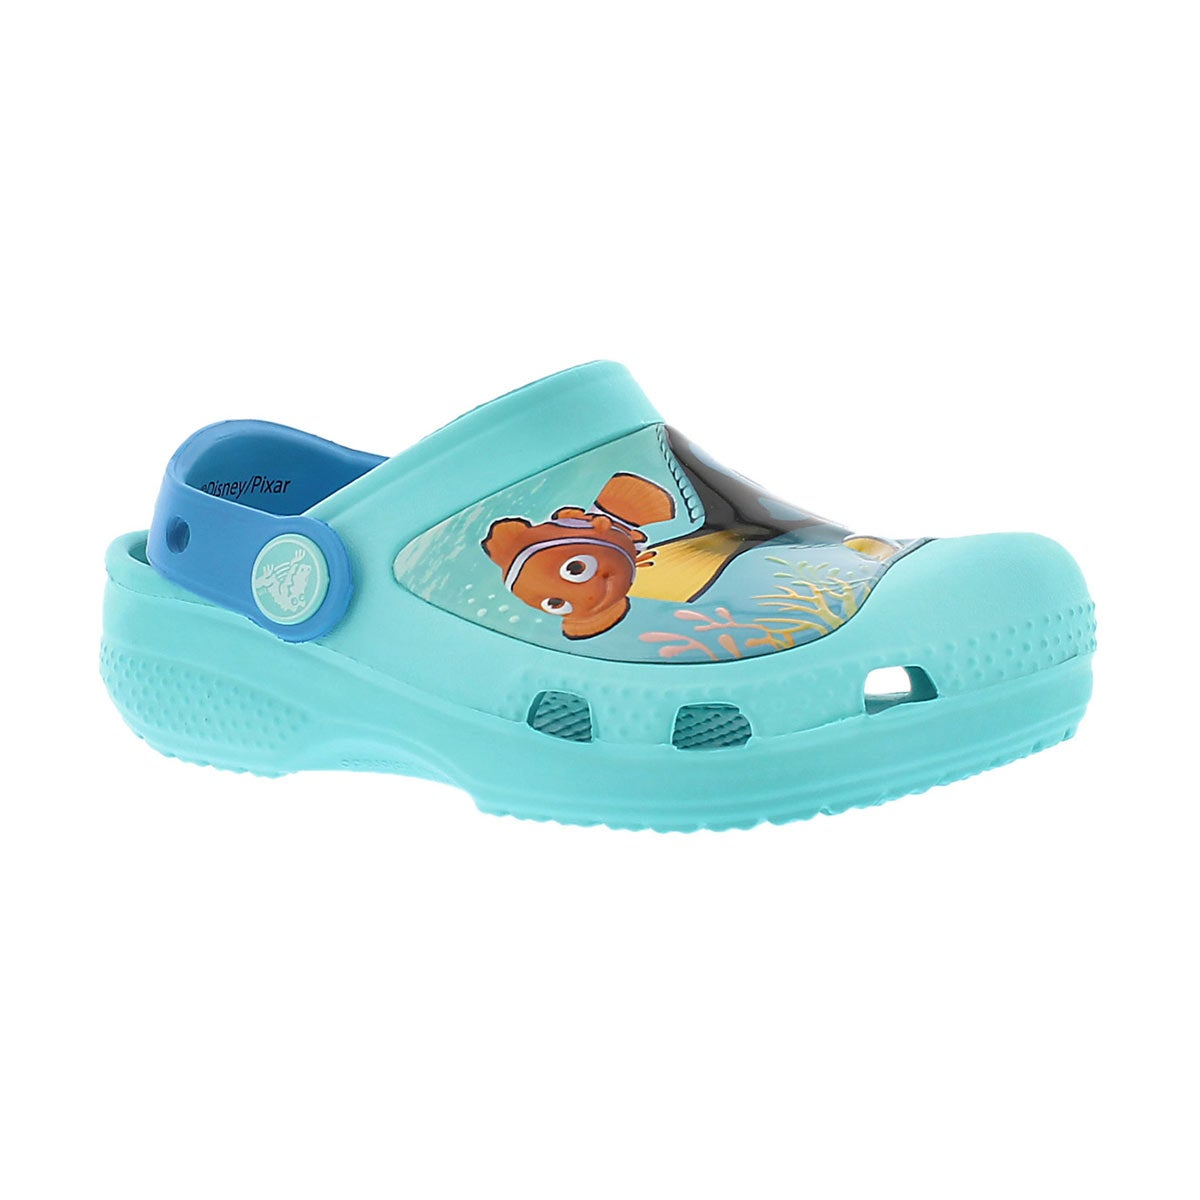 Girls' FINDING DORY pool comfort clogs